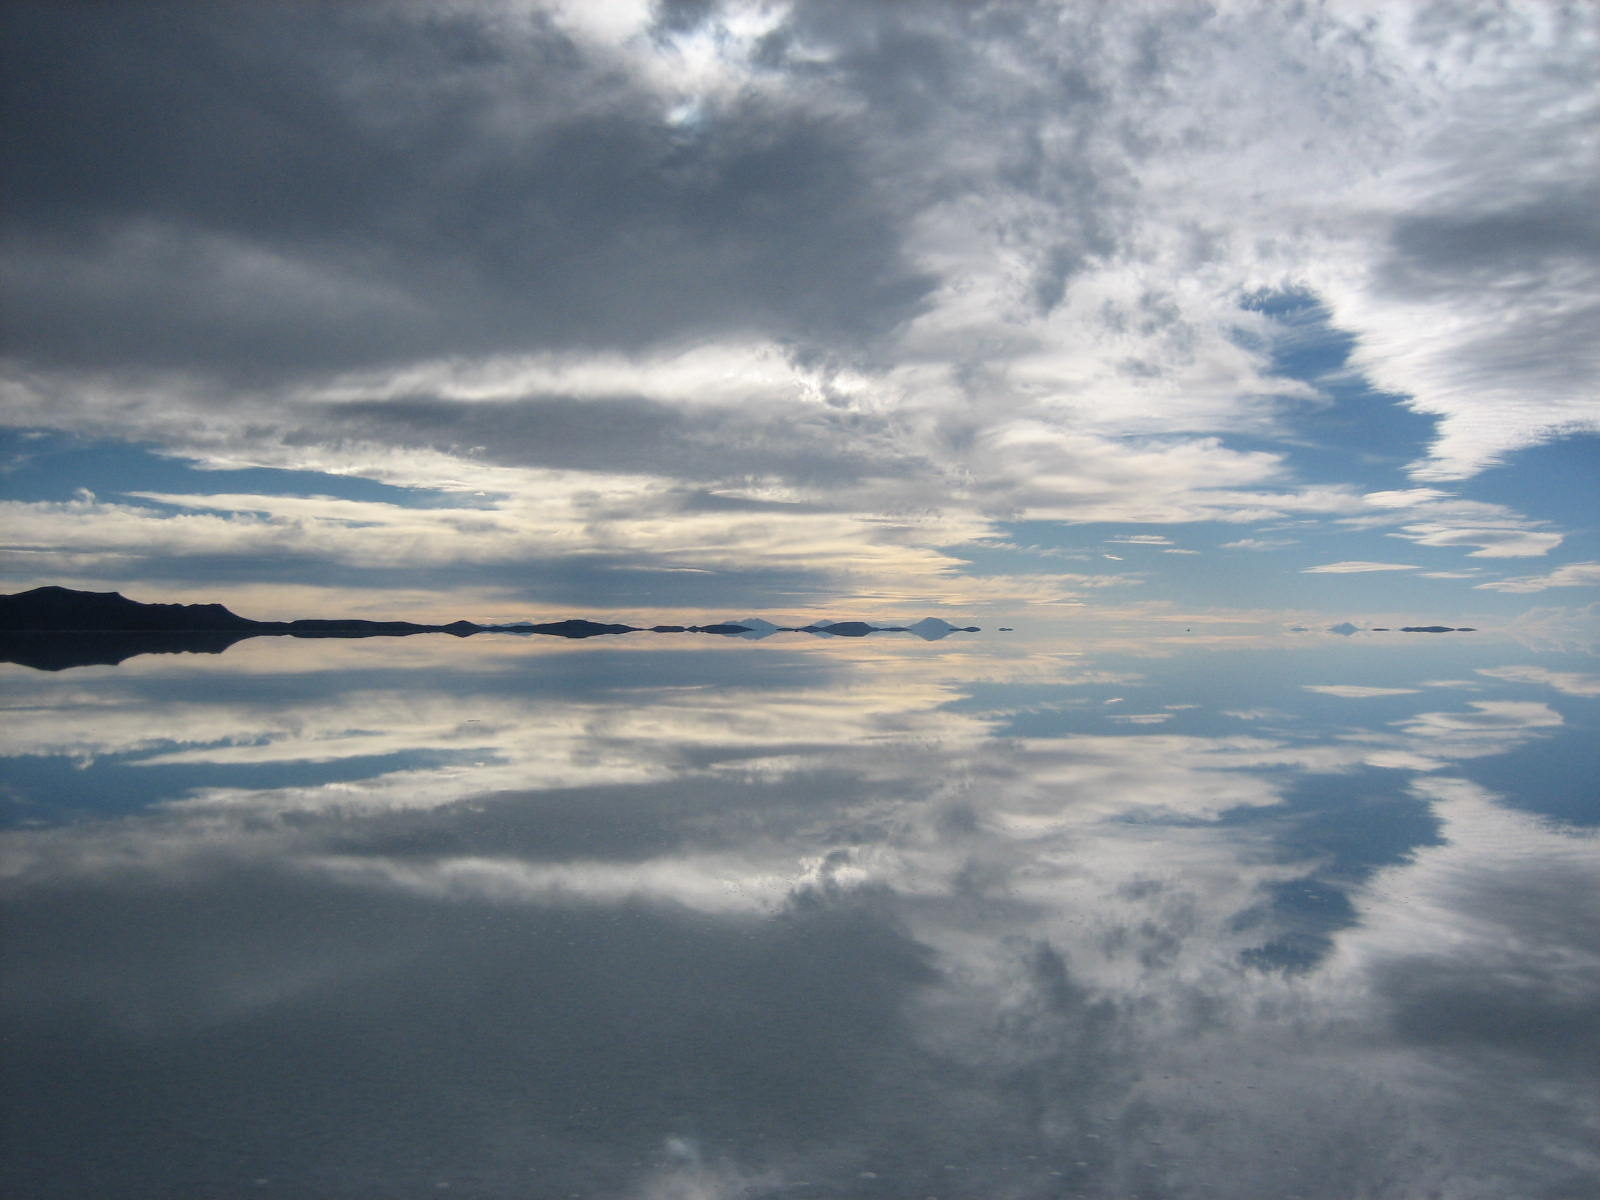 Introducing Bolivia: Salt flats and silver: 12 days in the Bolivian Highlands